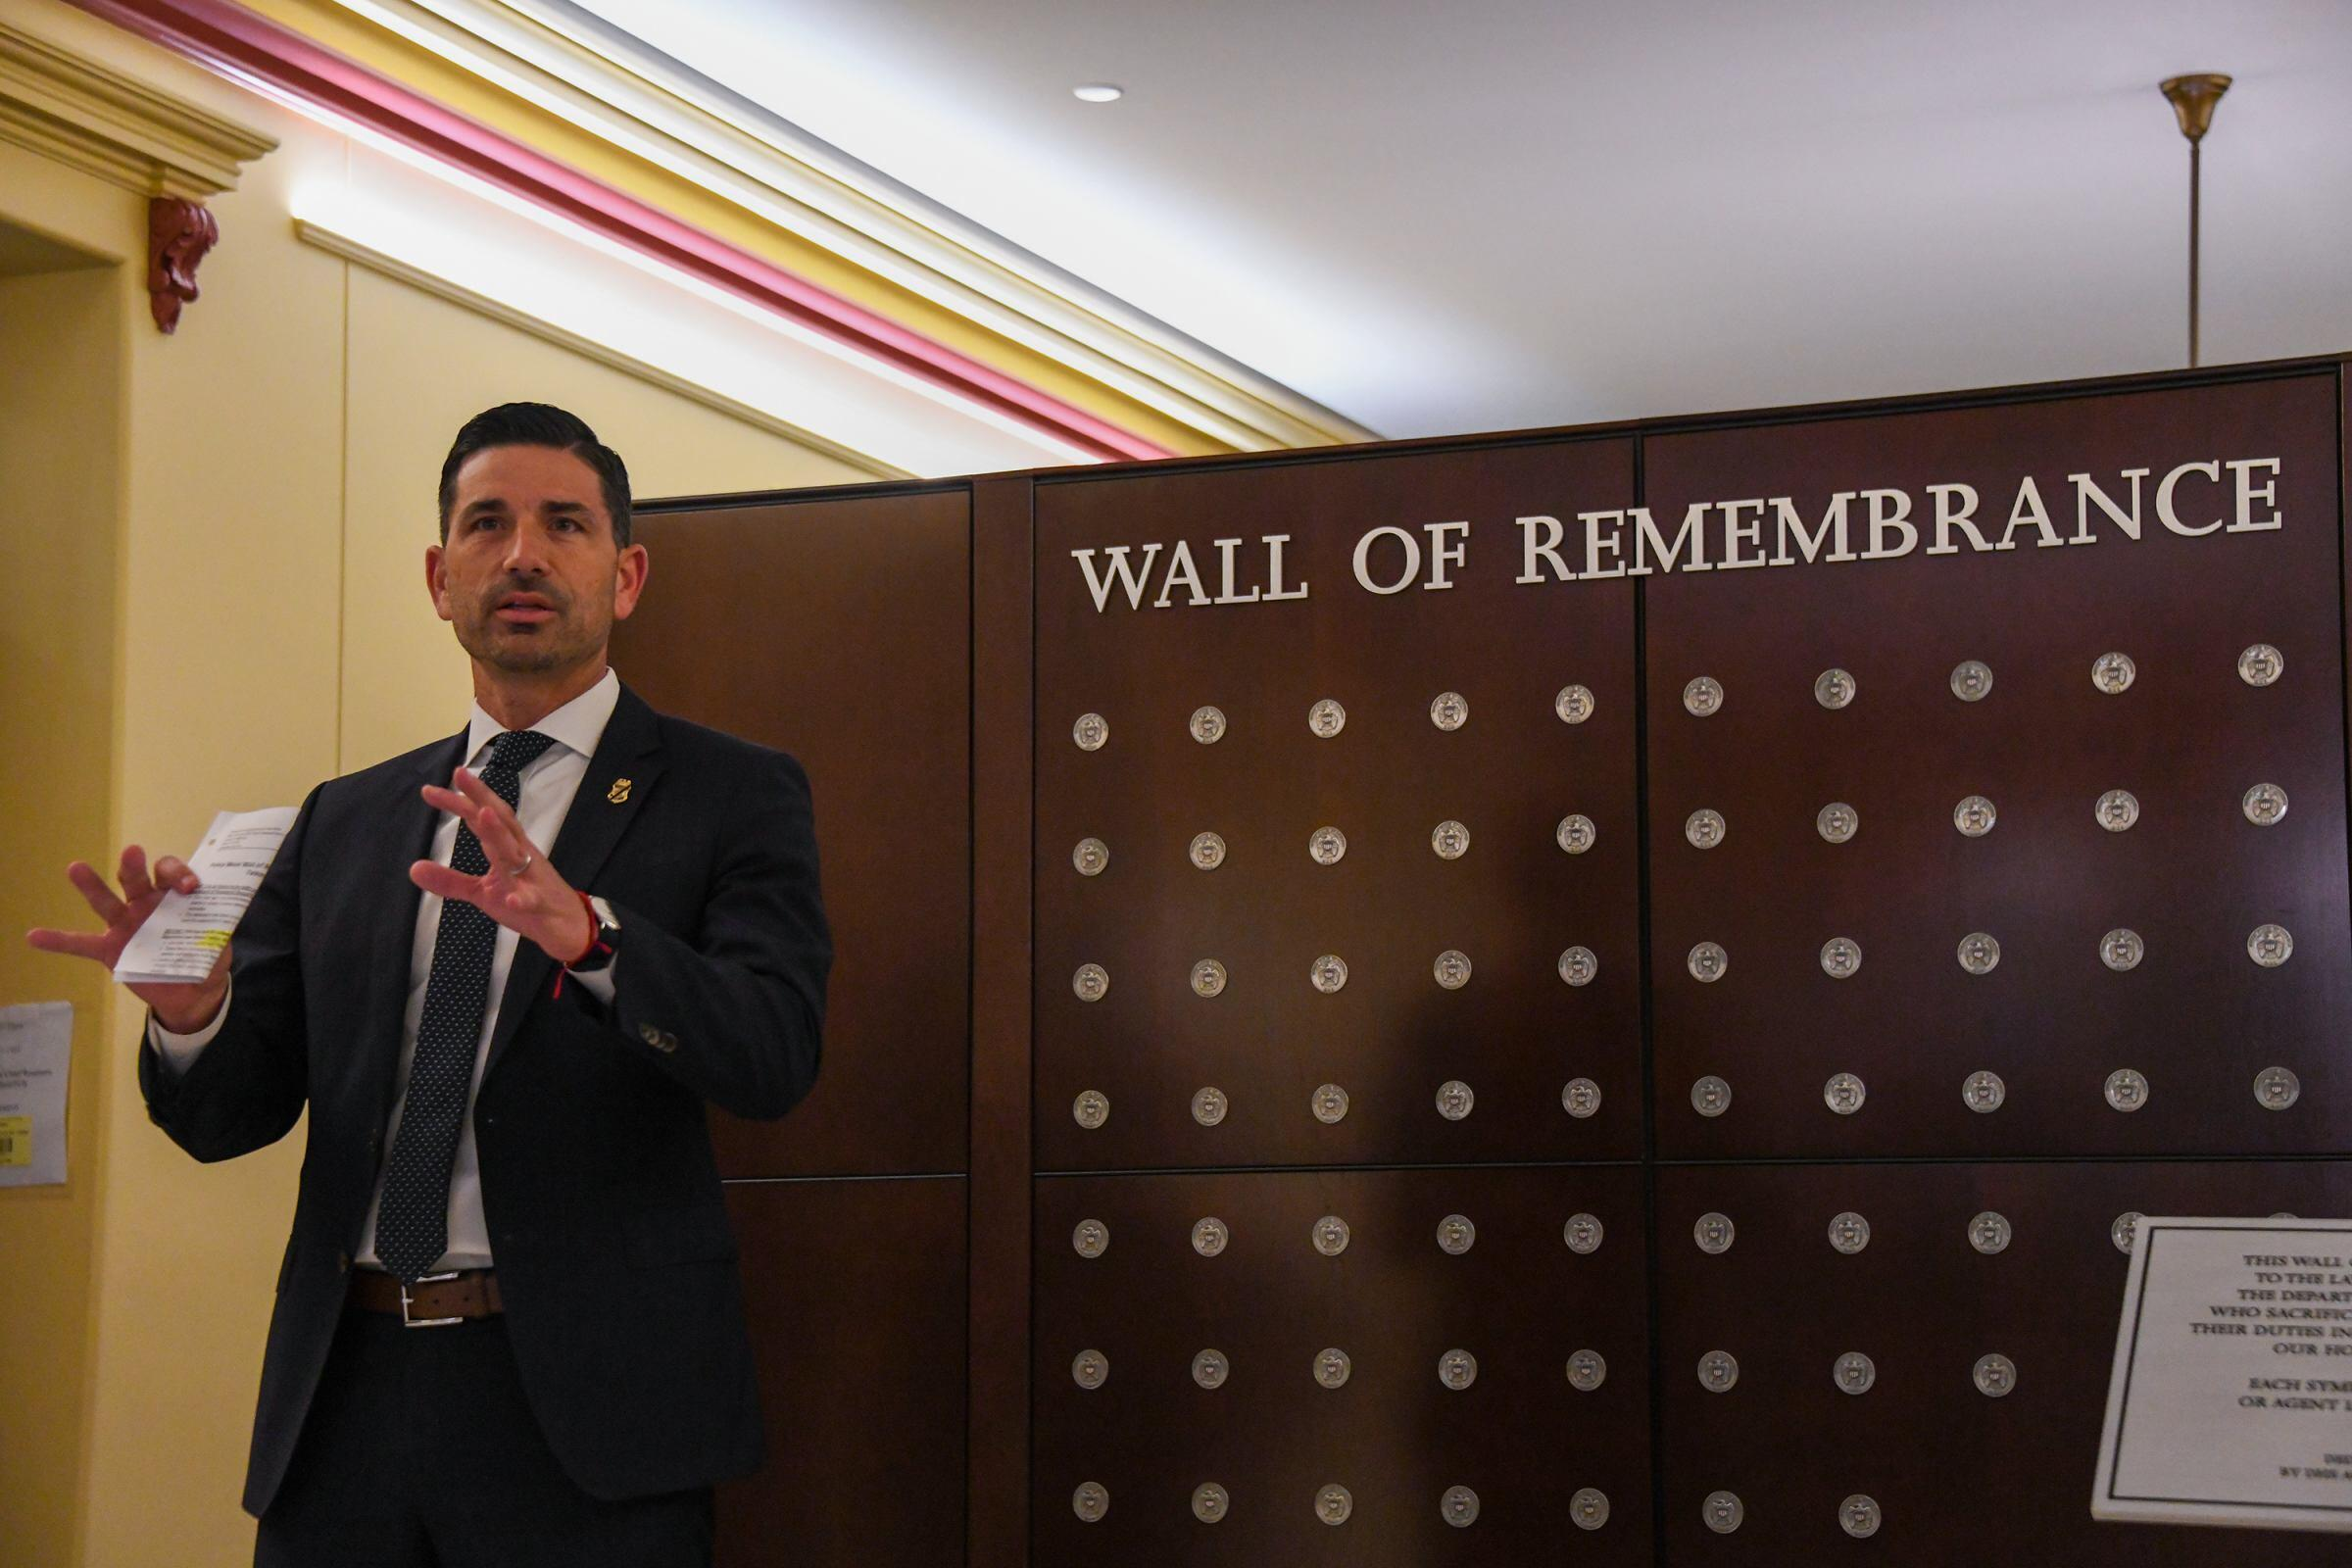 Acting DHS Secretary Chad F. Wolf dedicated a new DHS Wall of Remembrance at DHS headquarters.